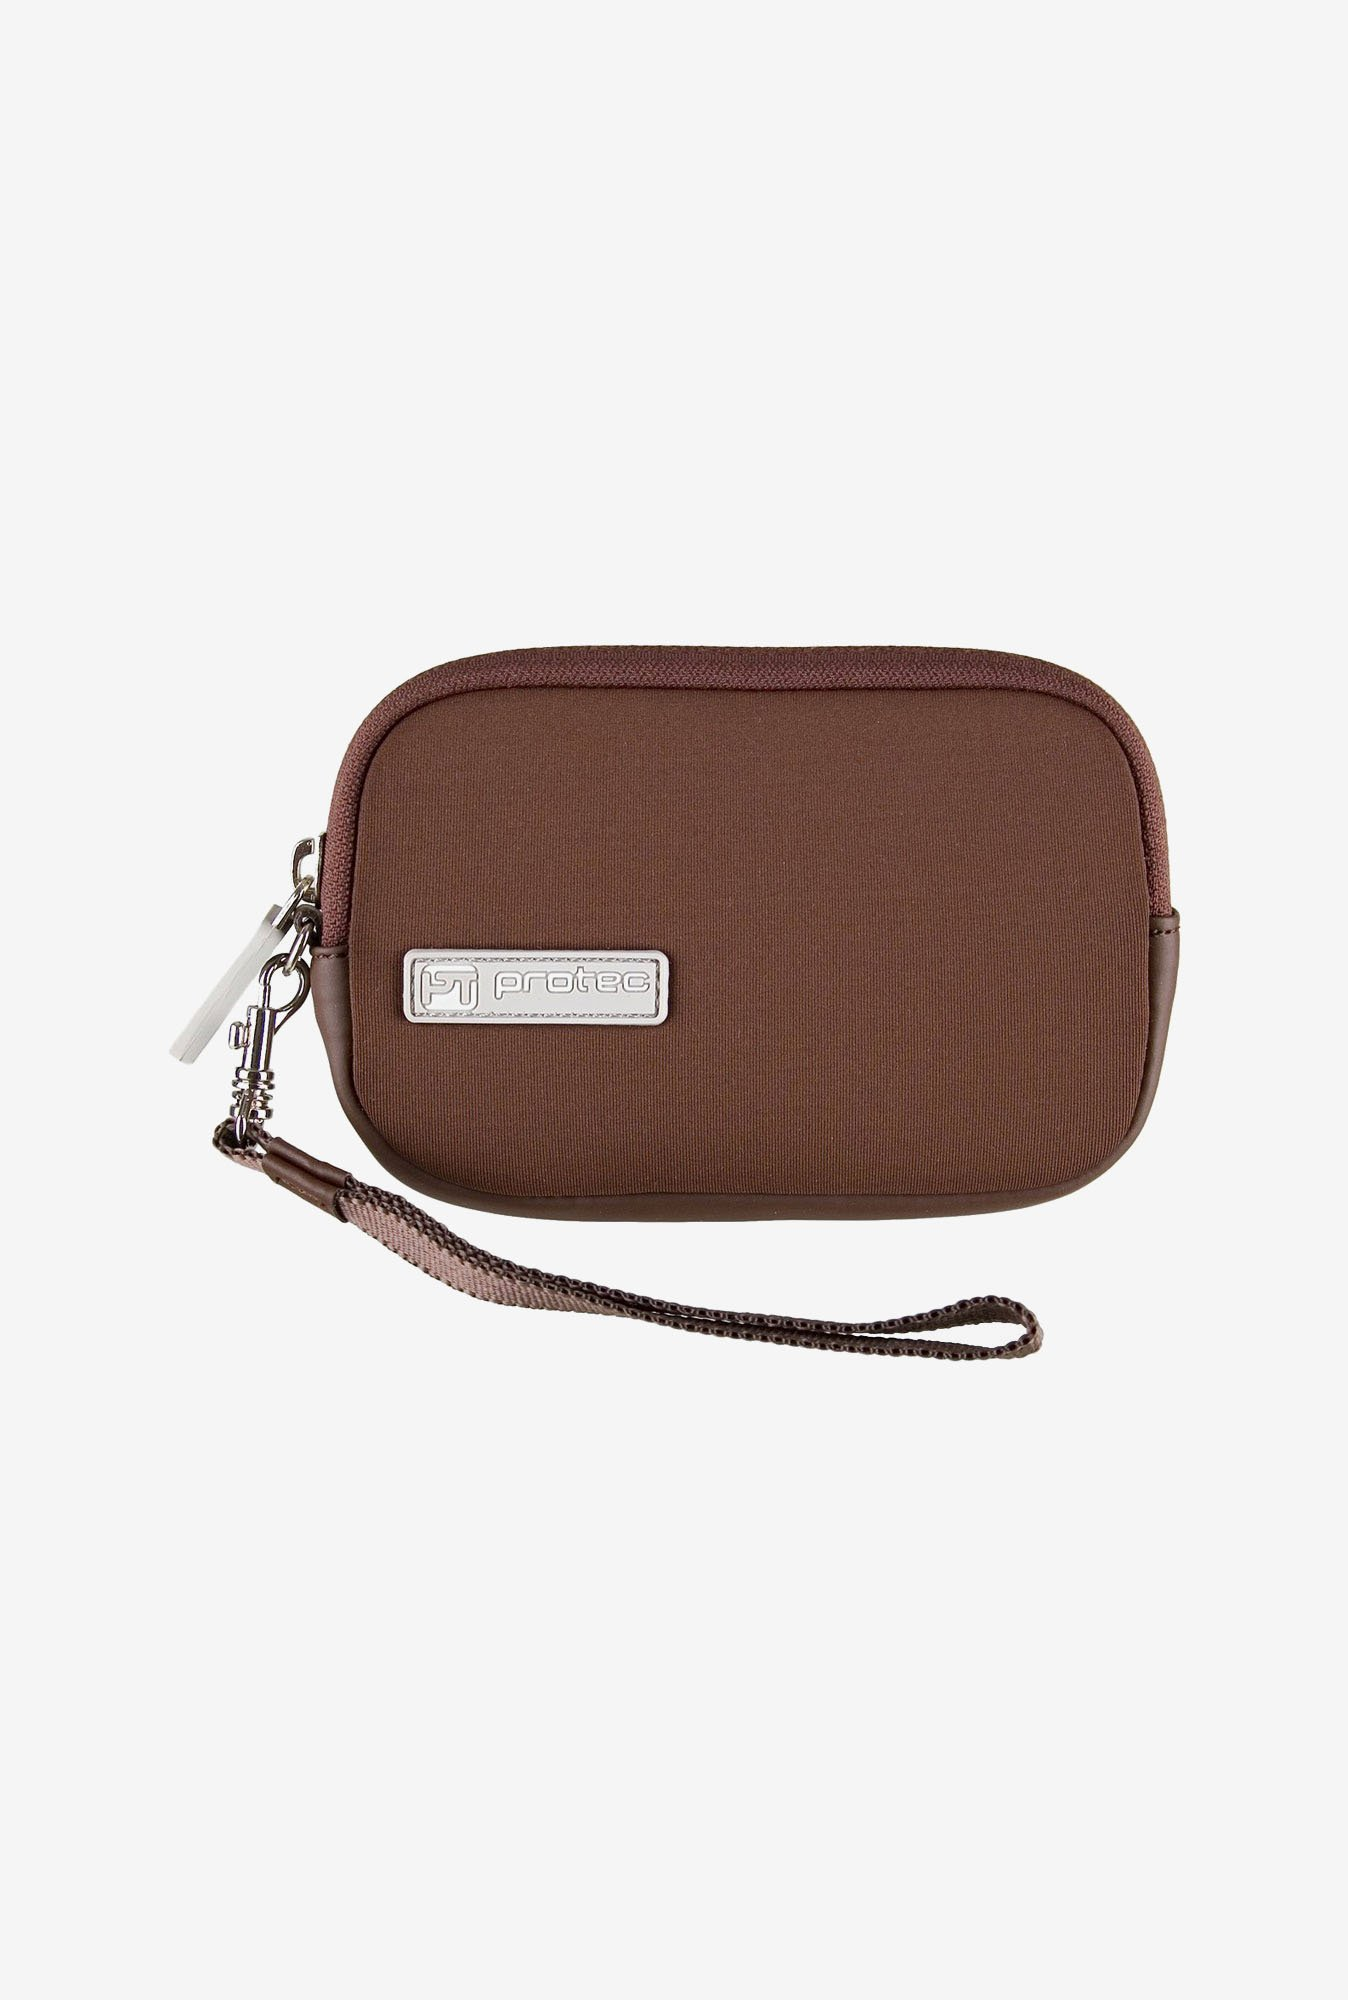 Protec A751CH Large Neoprene Pouch (Chocolate)